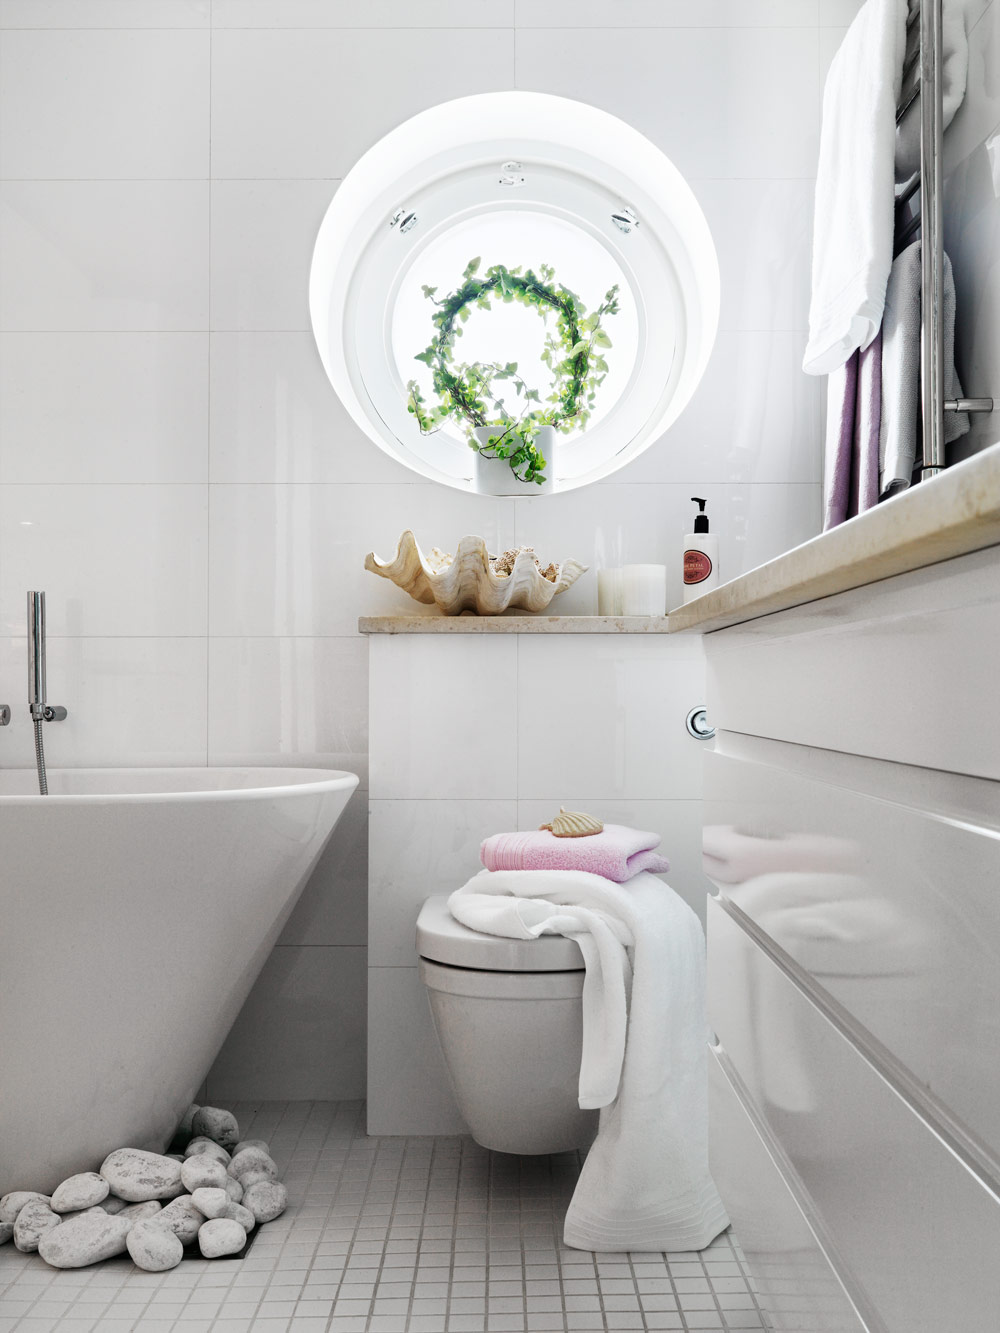 Stylish small bathroom with an unusual decor digsdigs for Tiny bathroom decor